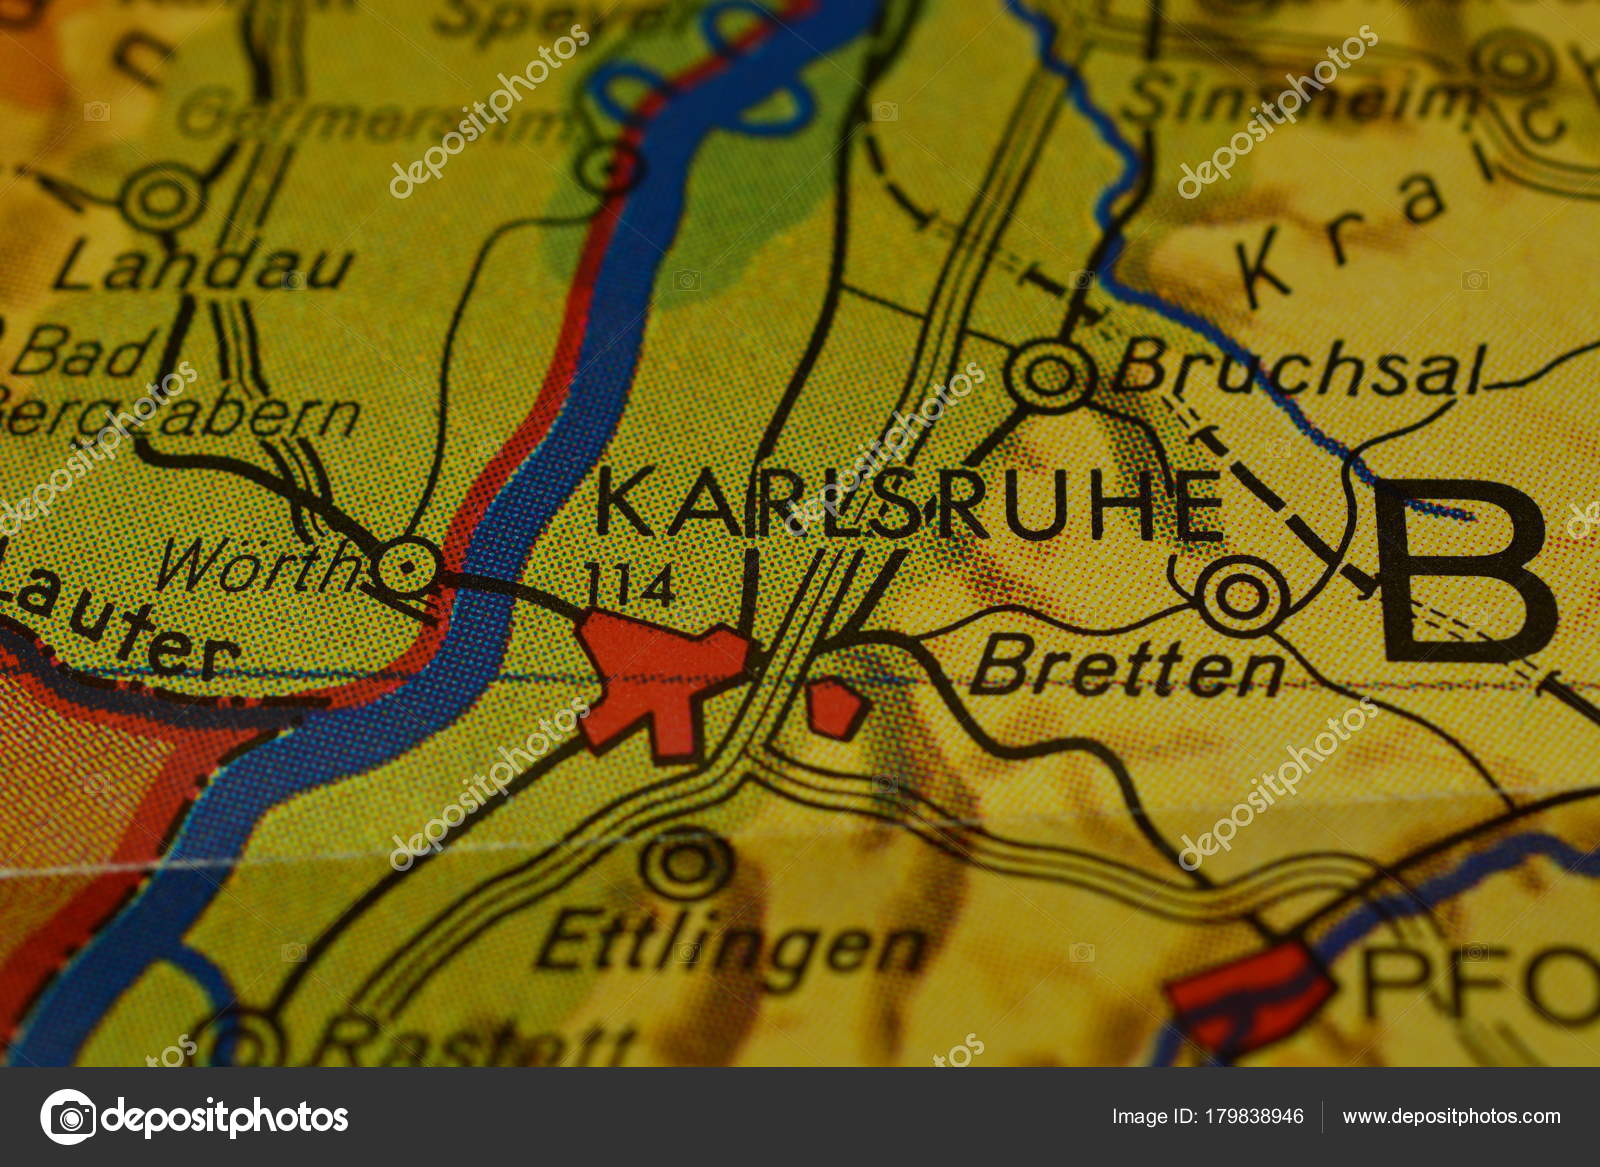 City Name Karlsruhe Map Stock Photo photographer20 179838946